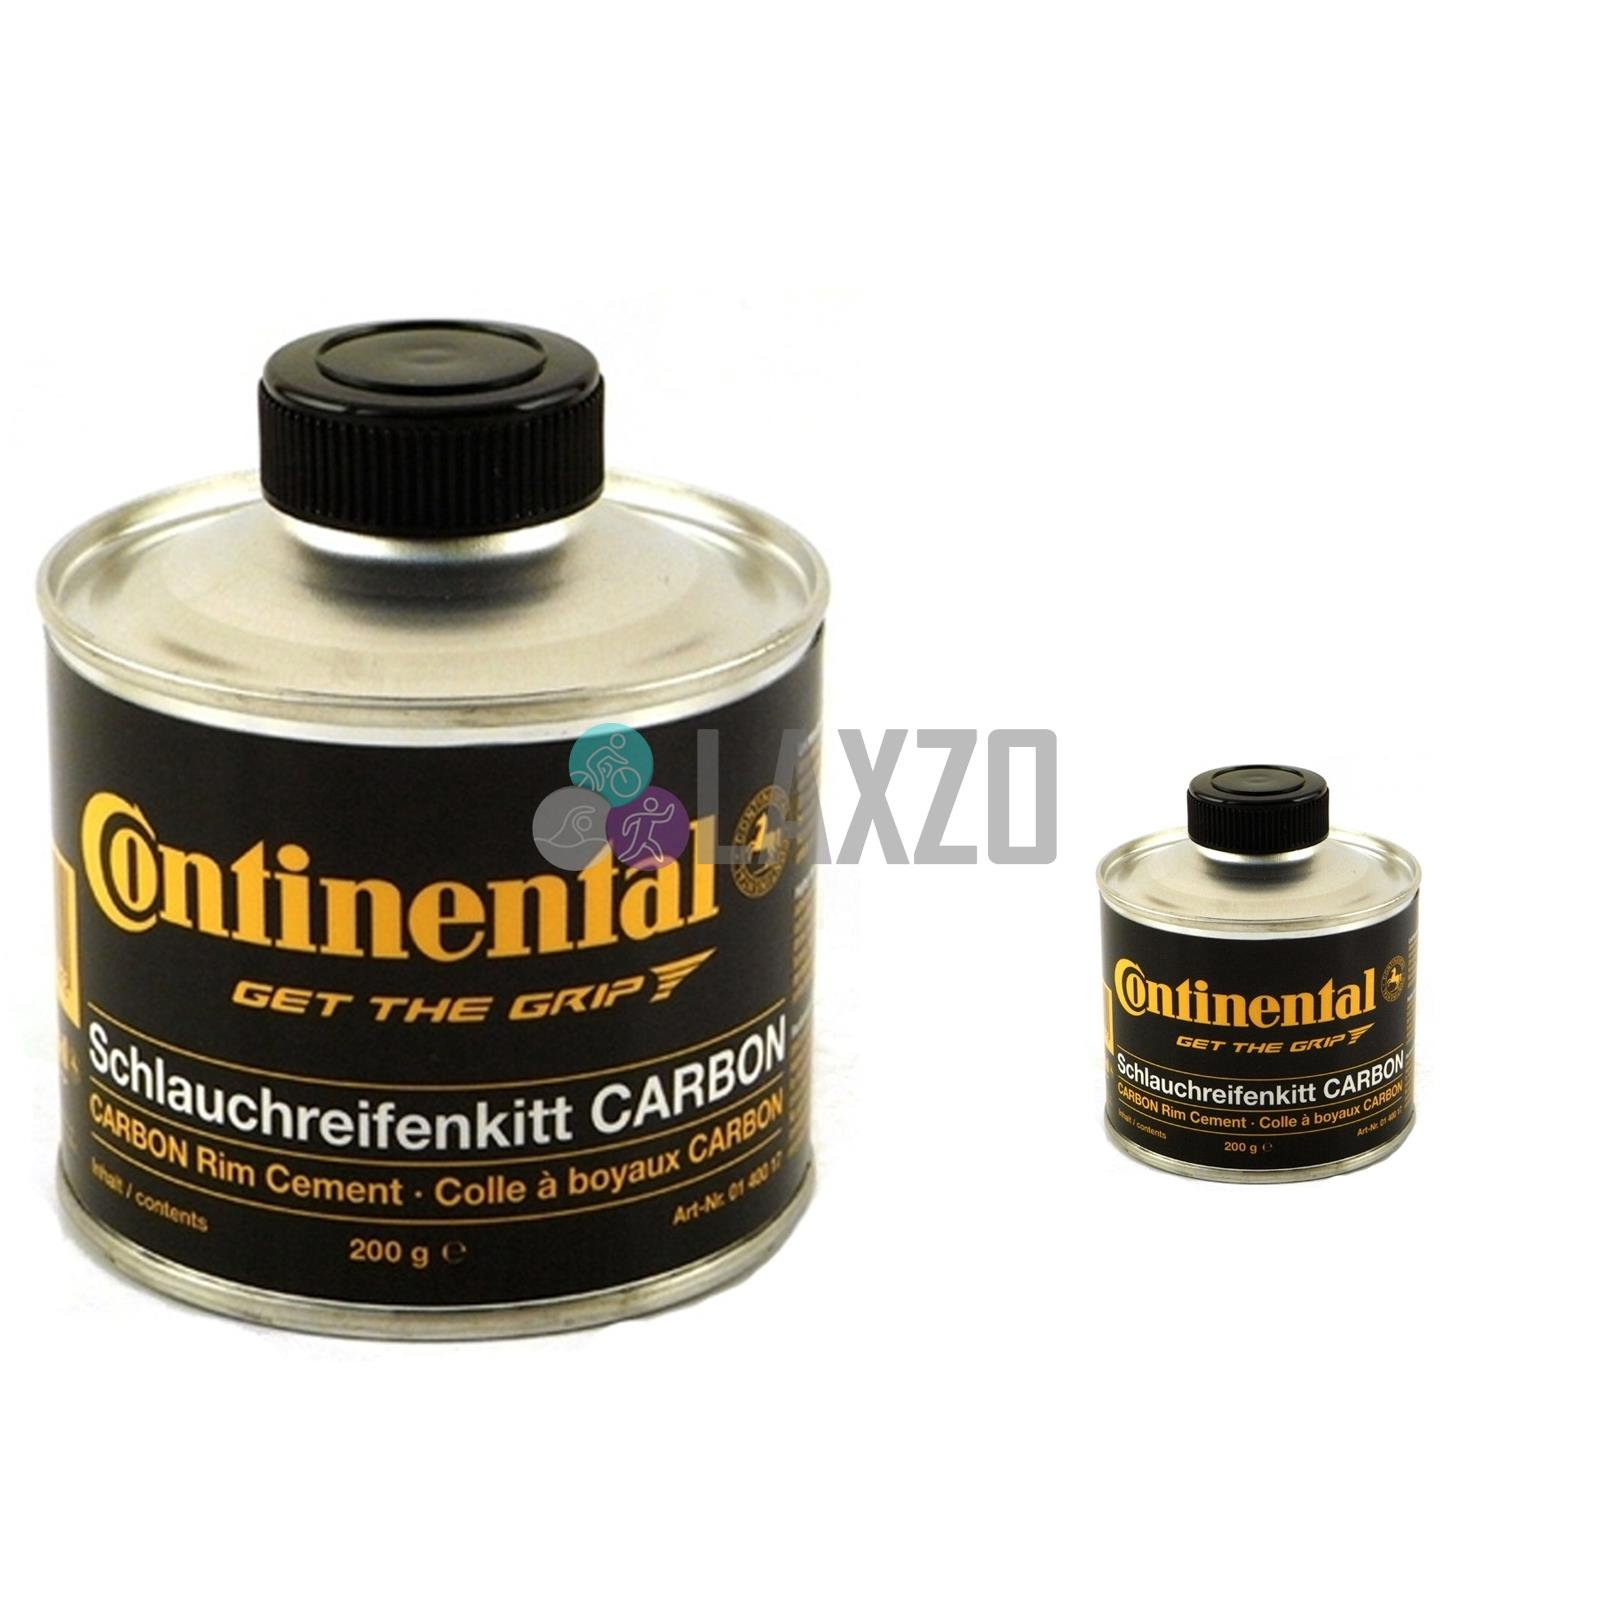 CONTINENTAL Bottle of tubular gluing for carbon rim 200g